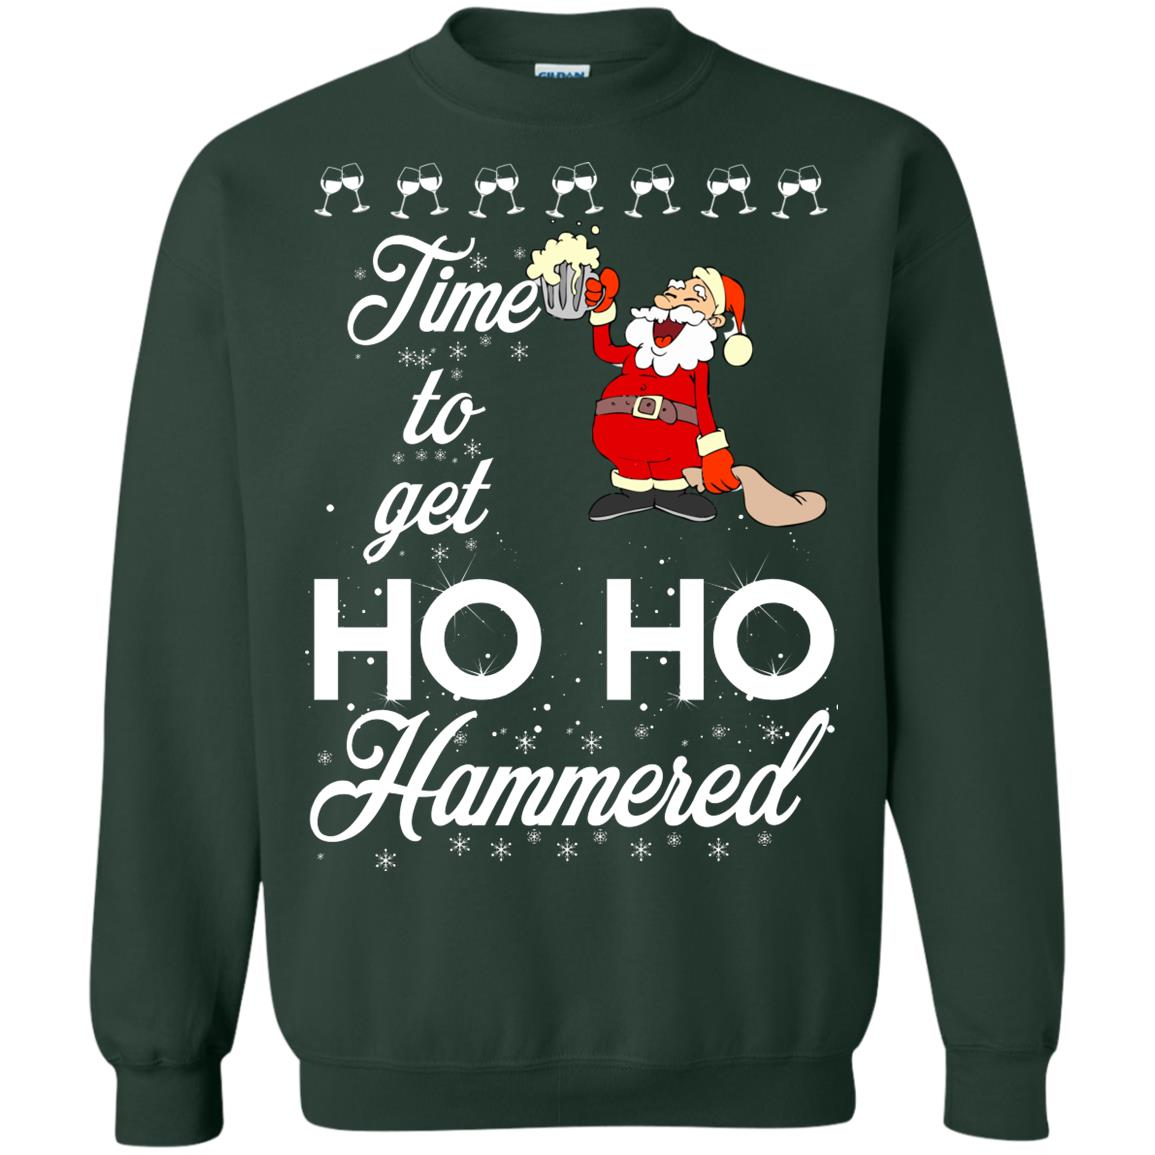 image 1657 - Time To Get Ho Ho Hammered Christmas Sweater, Shirt